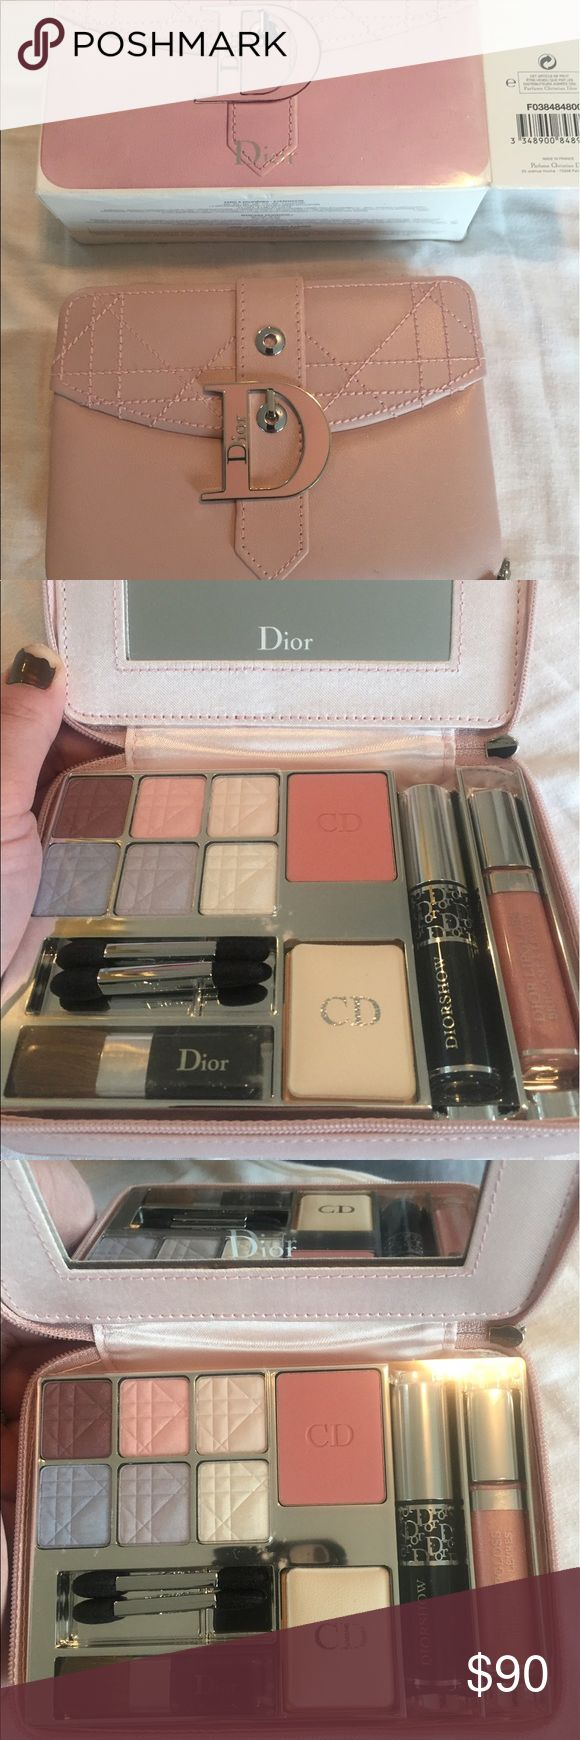 Christian Dior limited edition make up Palette Brand new Christian Dior Makeup